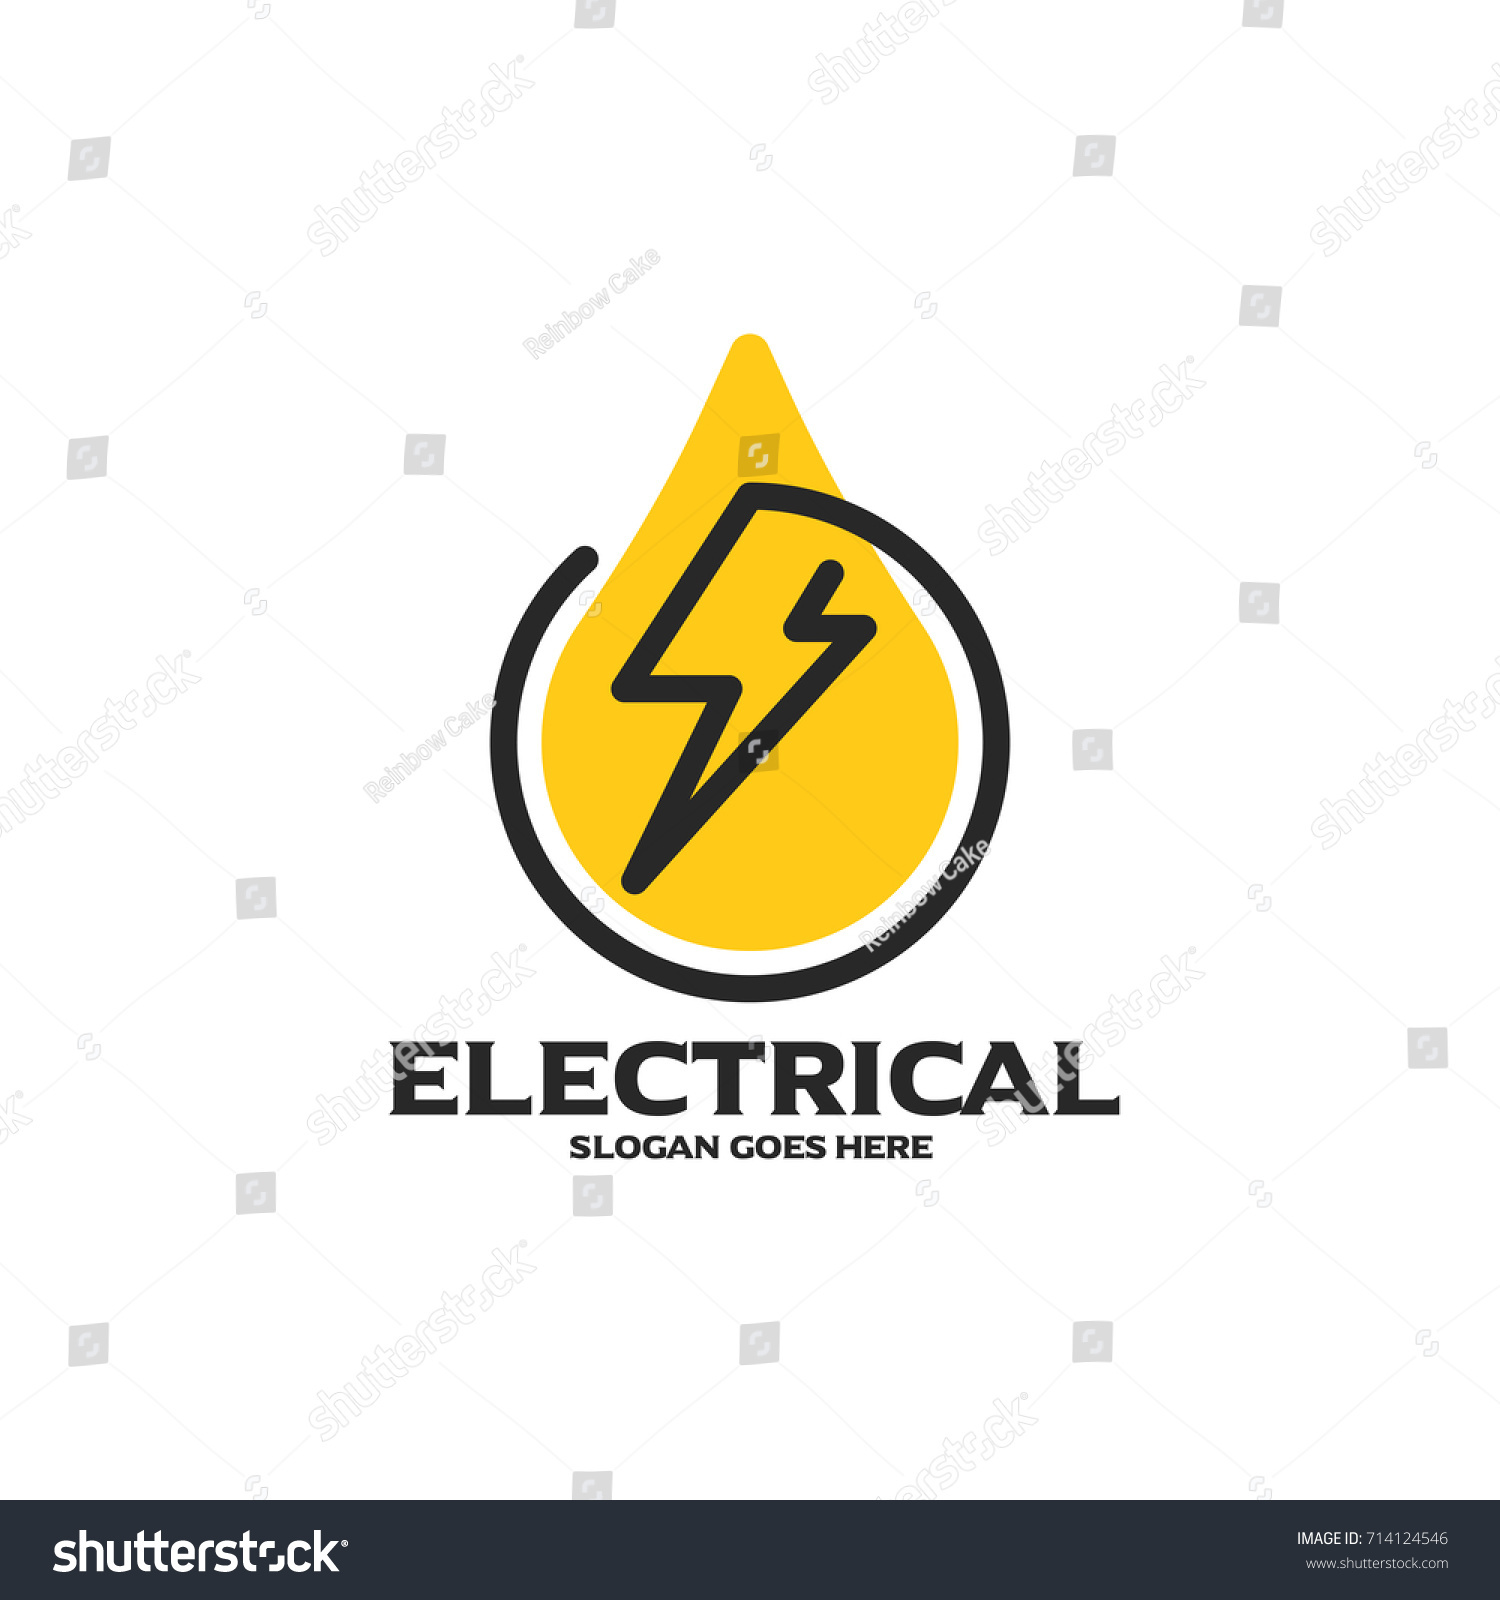 Electrical logo electrical mechanical business company stock electrical logo electrical and mechanical business company good for name card branding flyer magicingreecefo Images